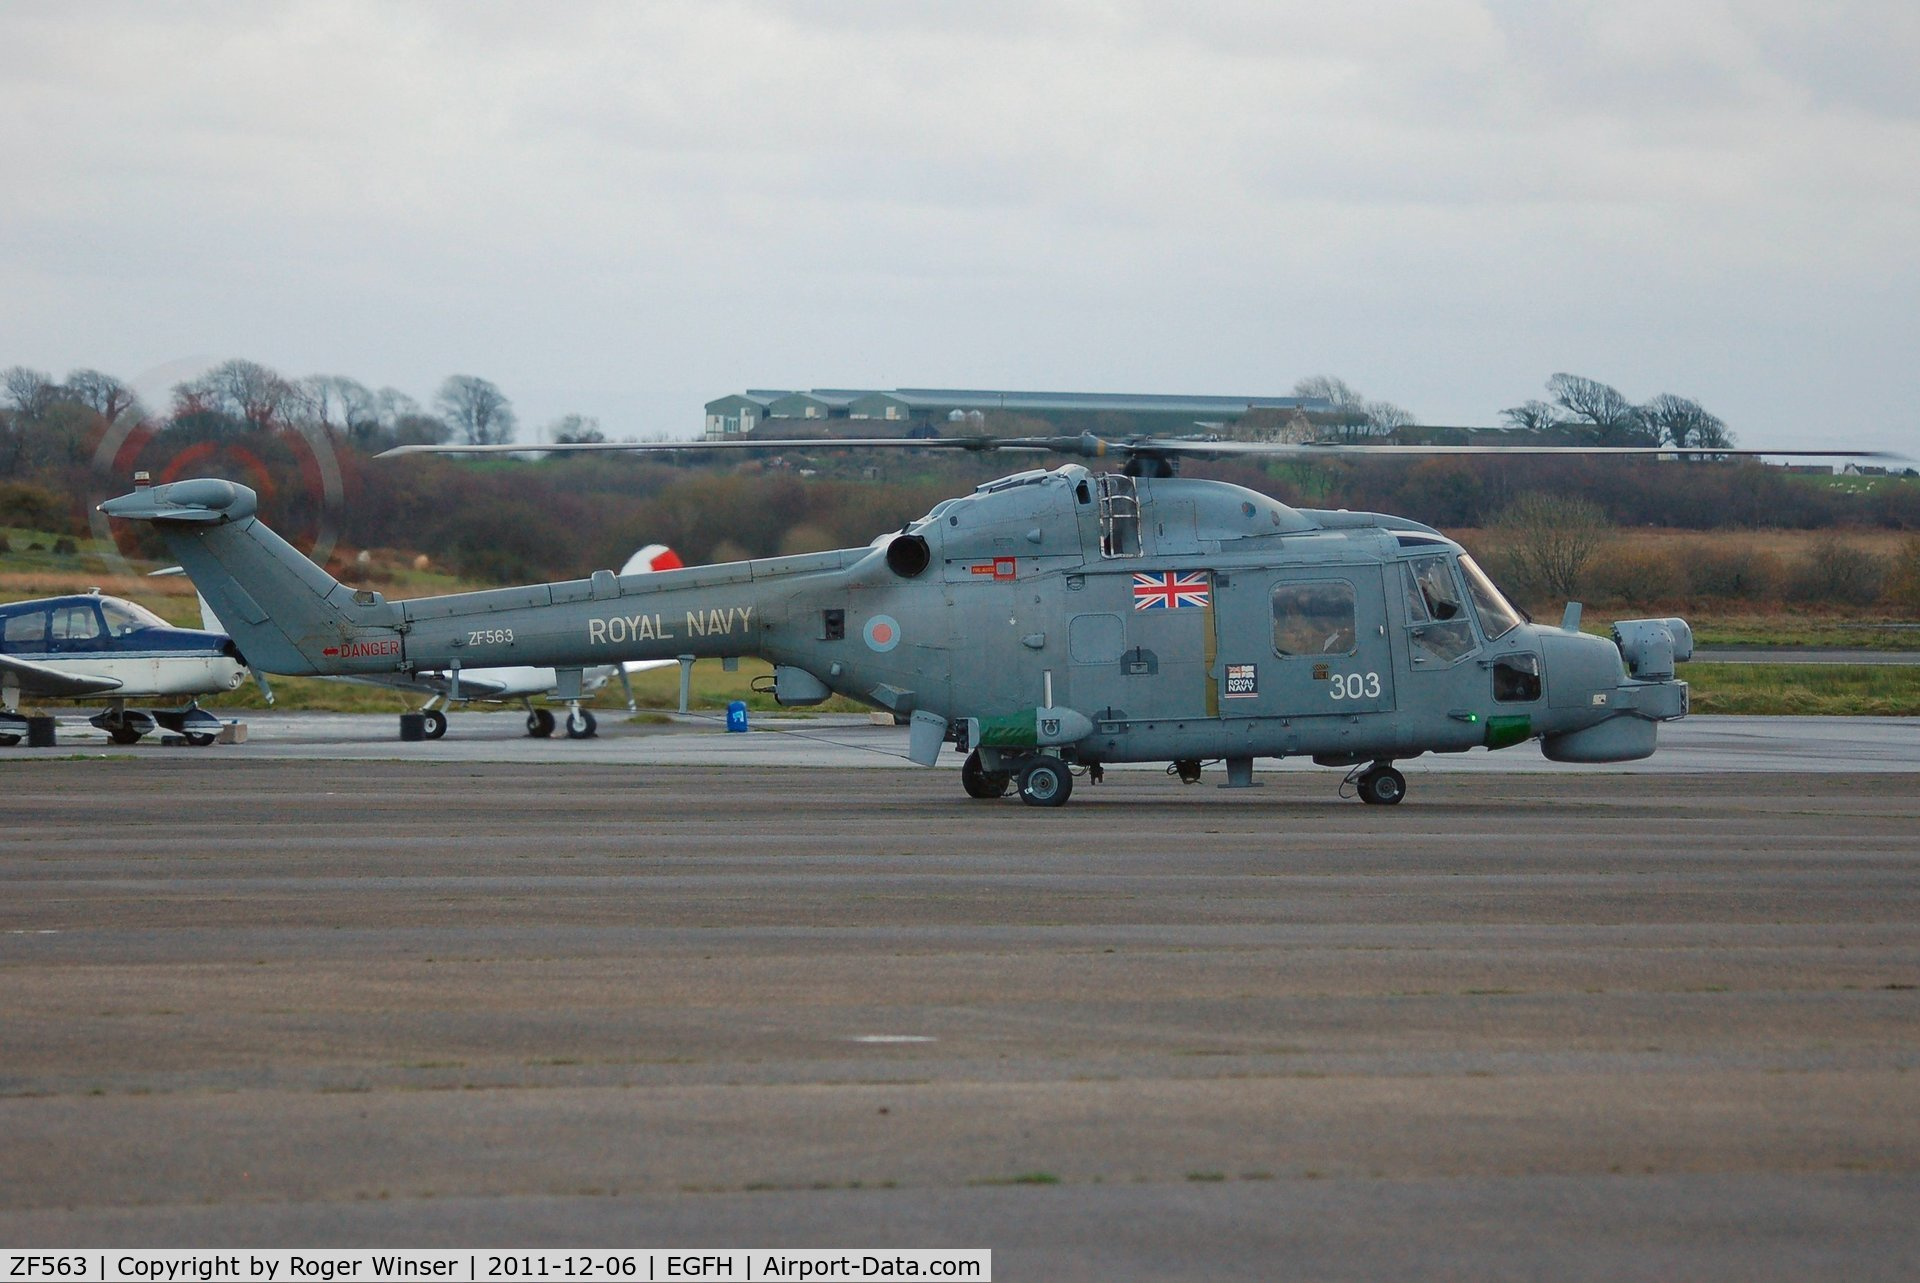 ZF563, 1988 Westland Lynx HMA.8SRU C/N 340, Coded 303 of 815 NAS. About to depart after taking on fuel.